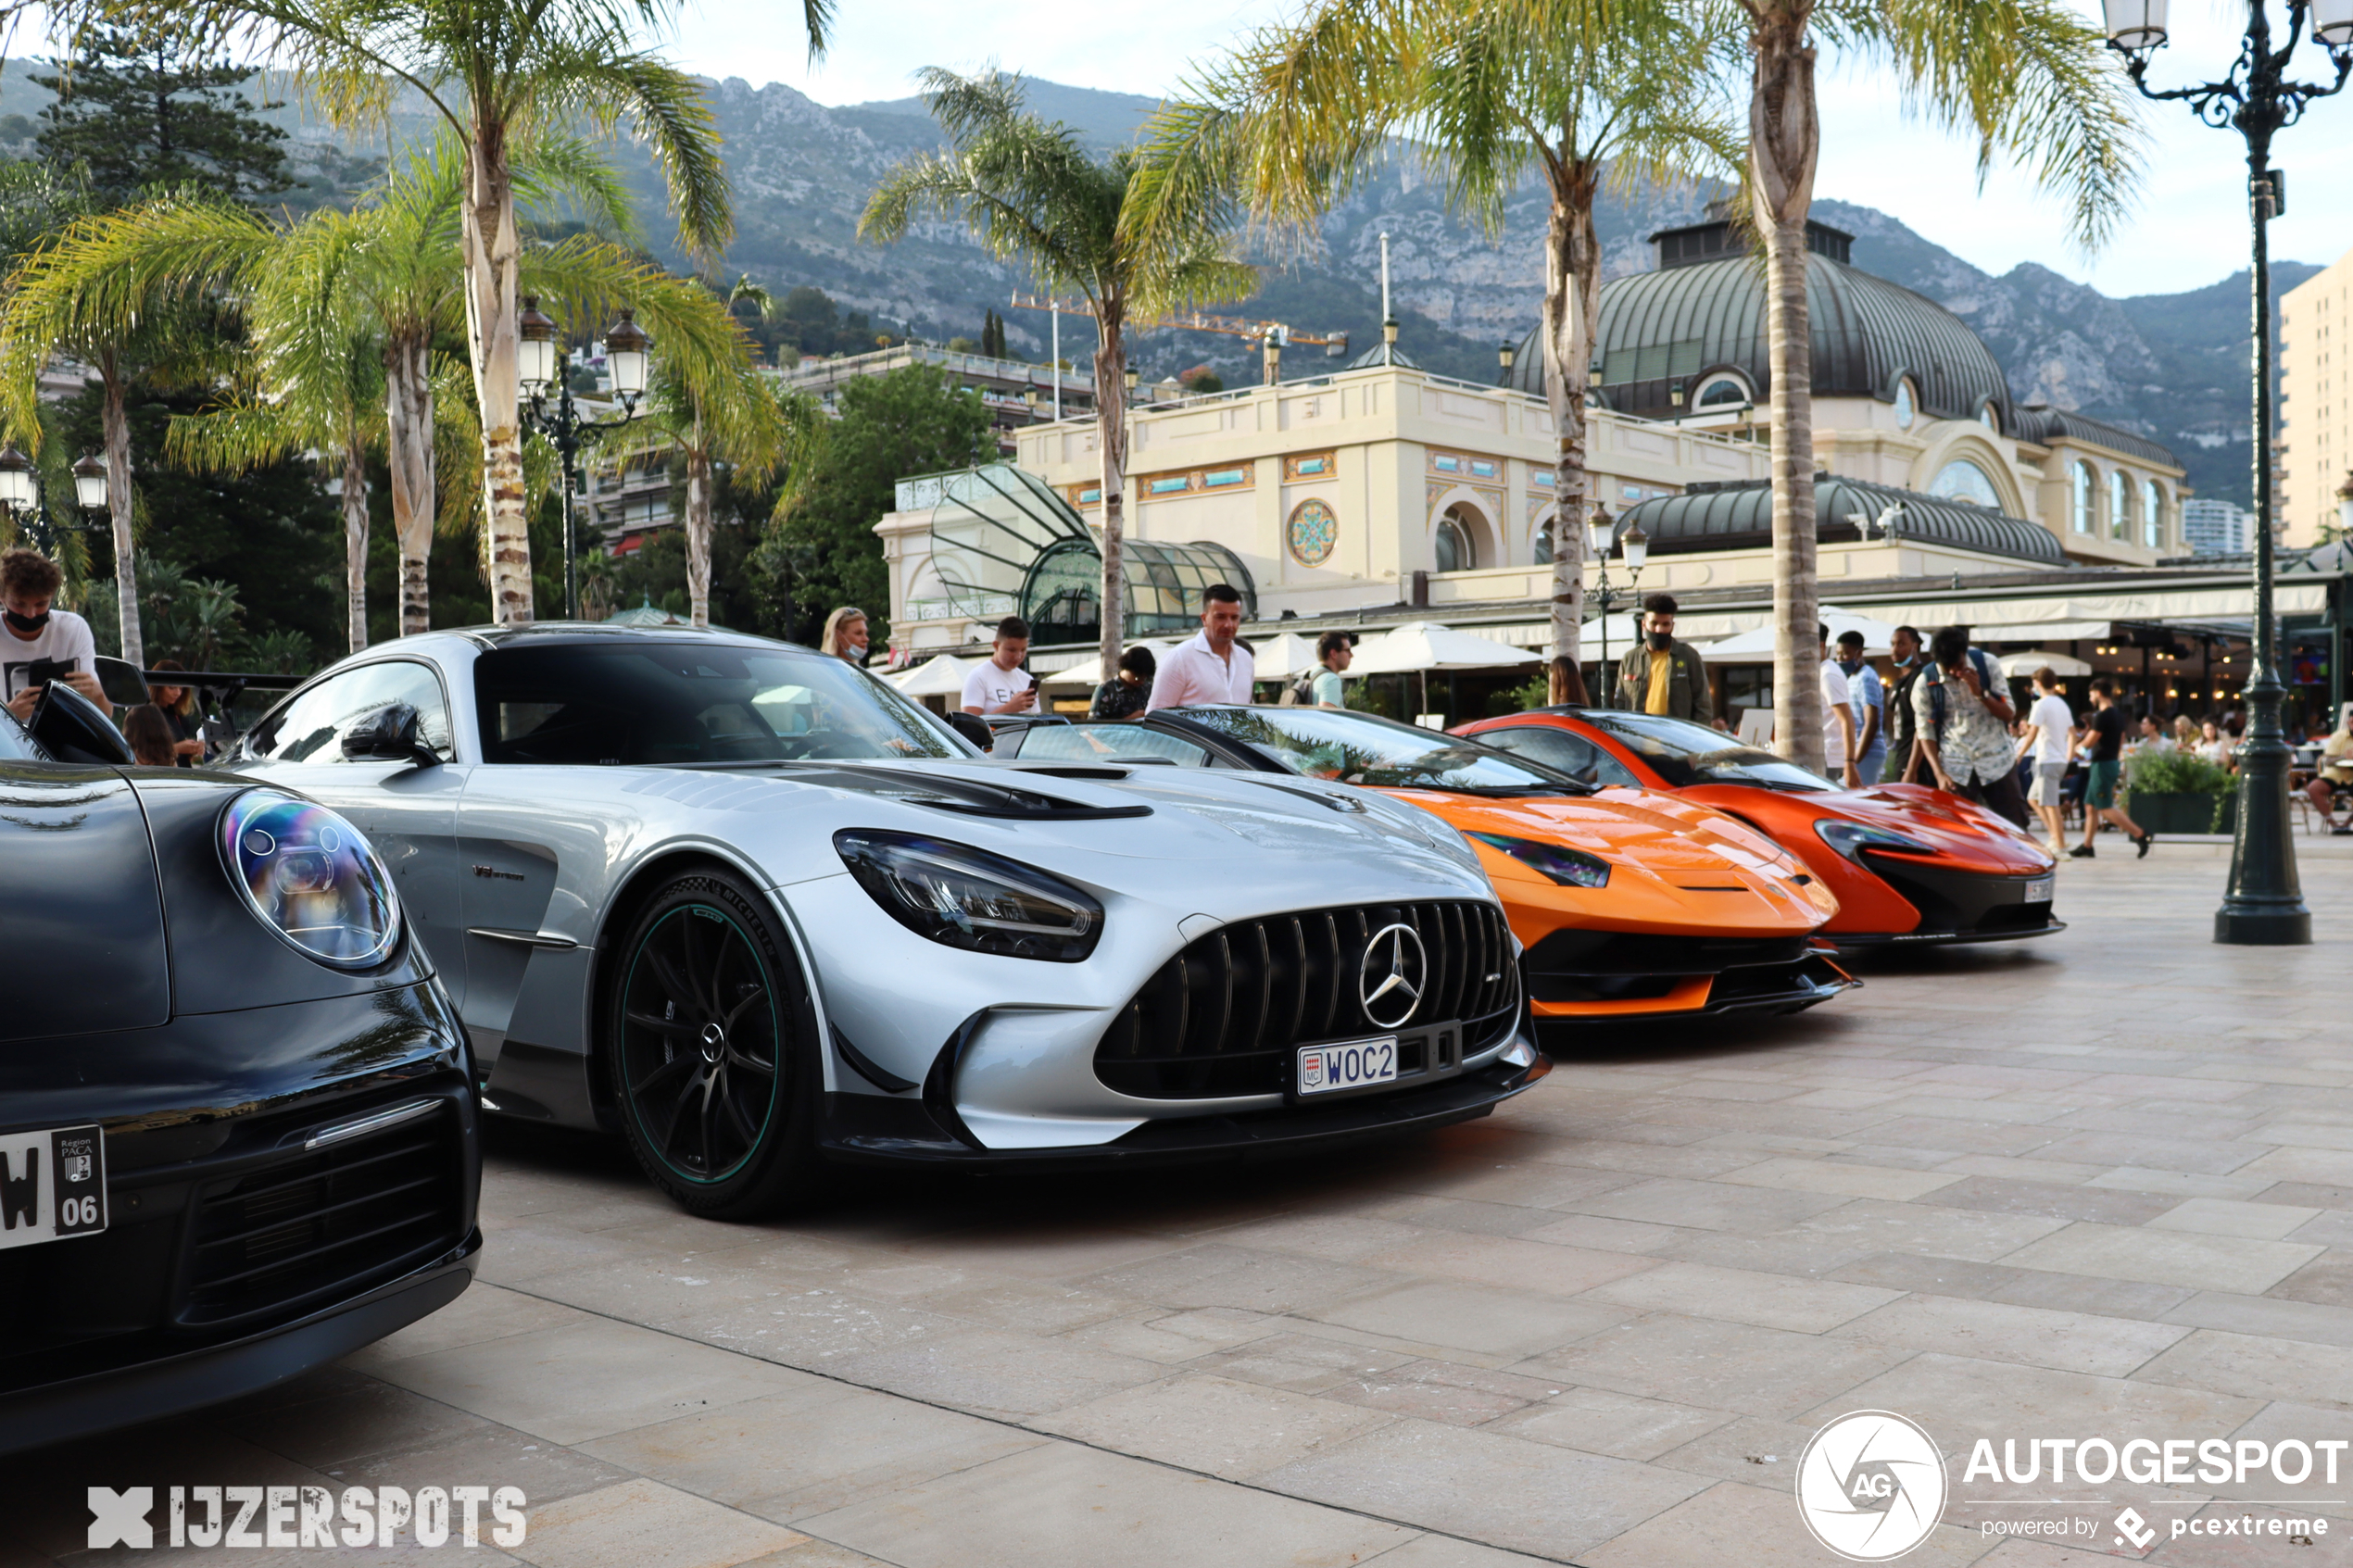 Mercedes-AMG GT Black Series C190 Project One Edition